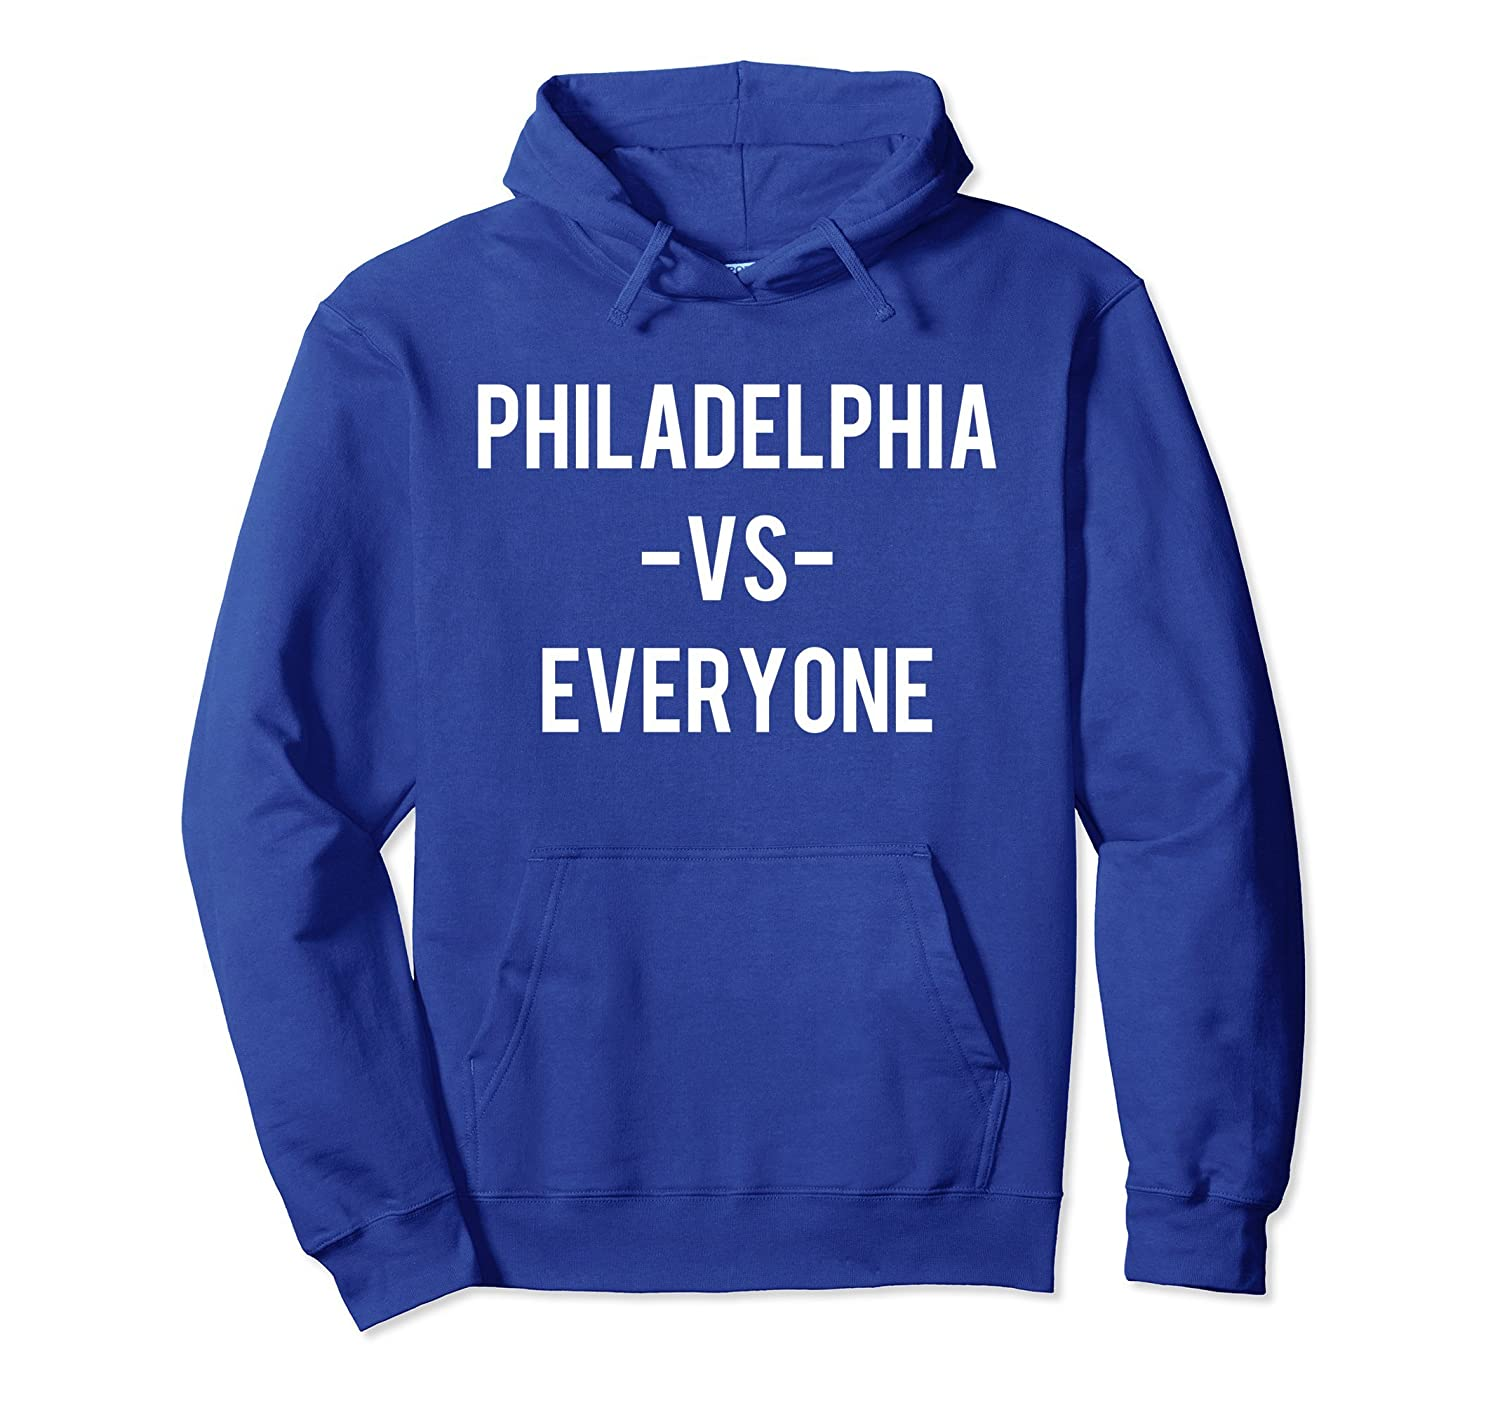 Philadelphia VS Everyone Hoodie Sweatshirt-alottee gift